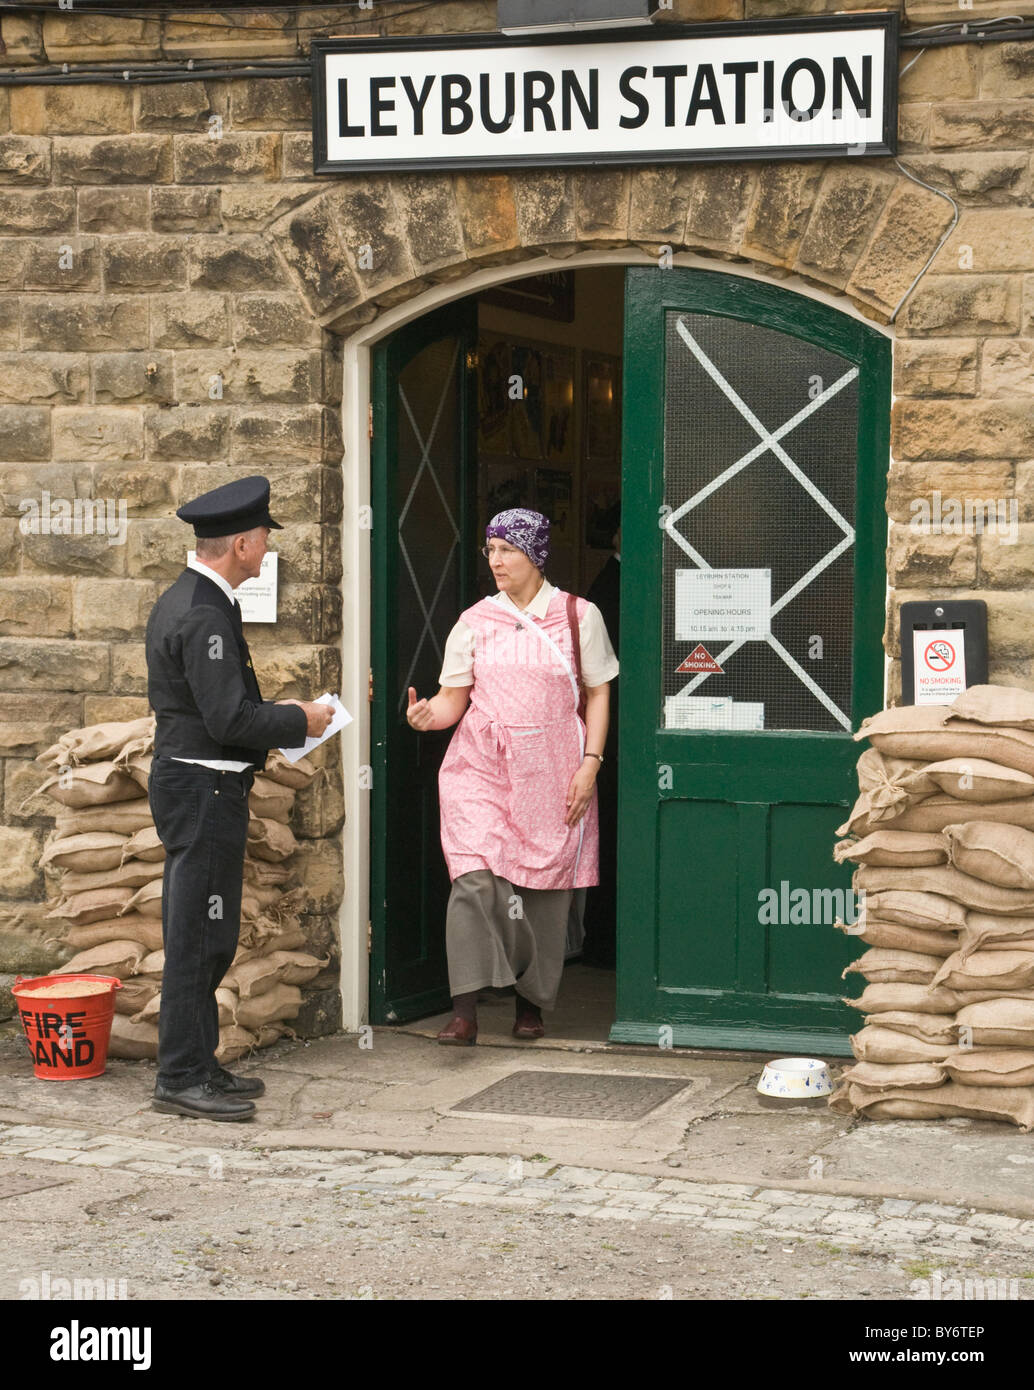 Entrance to Leyburn Railway Station during the annual 1940's re-enactment - Stock Image